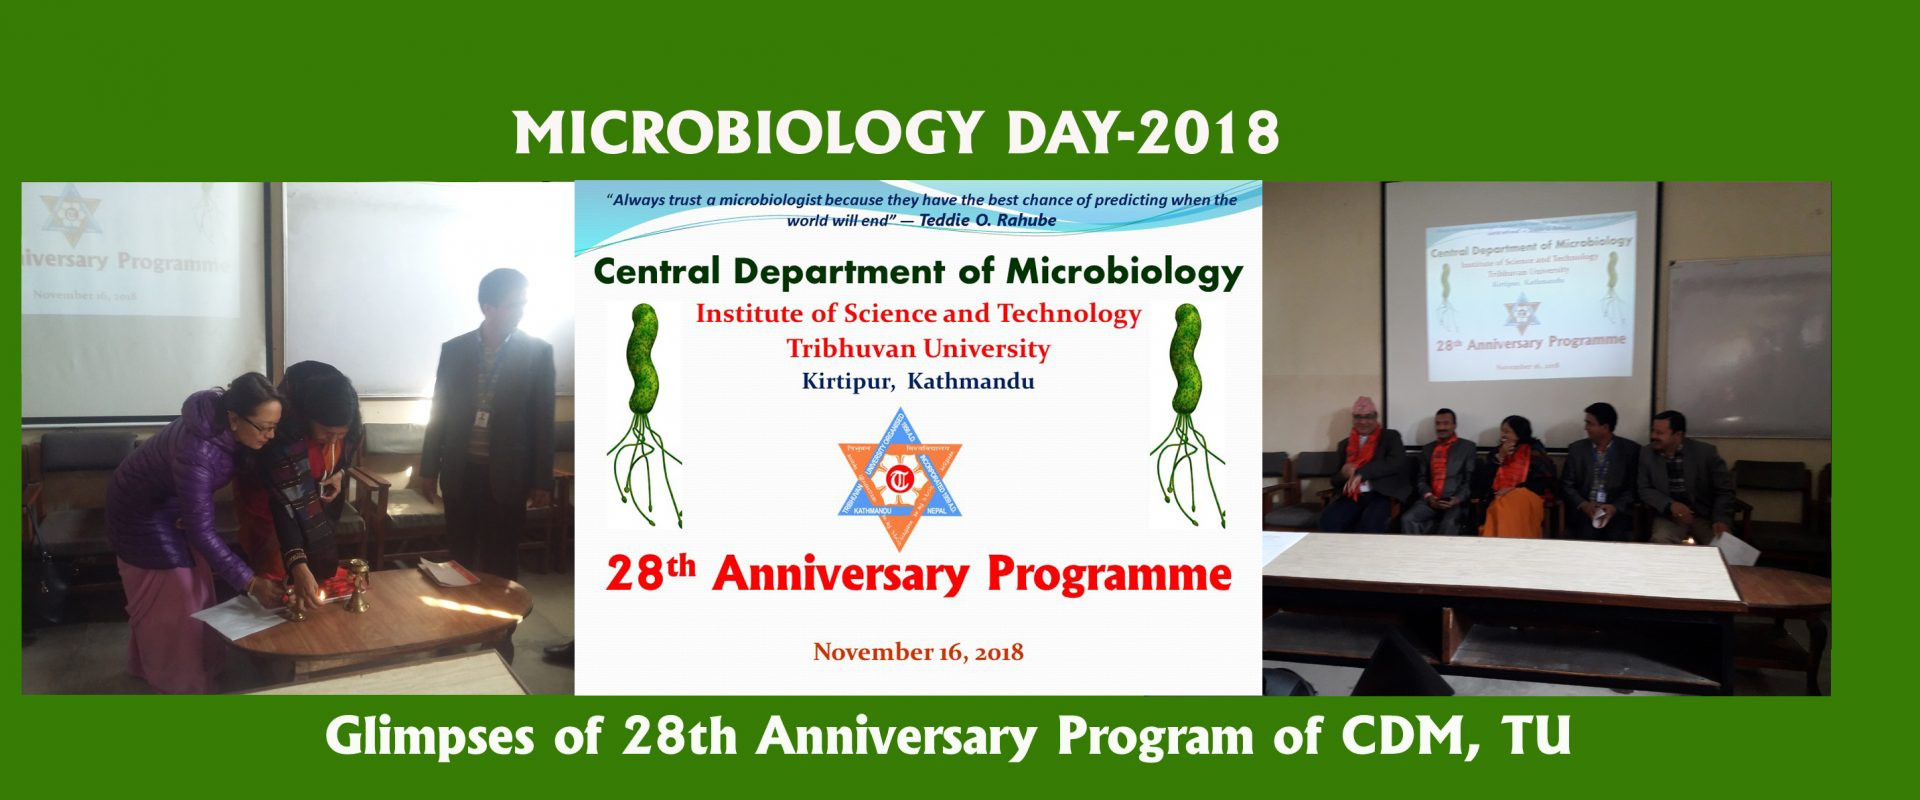 Central Department of Microbiology – Central Department of